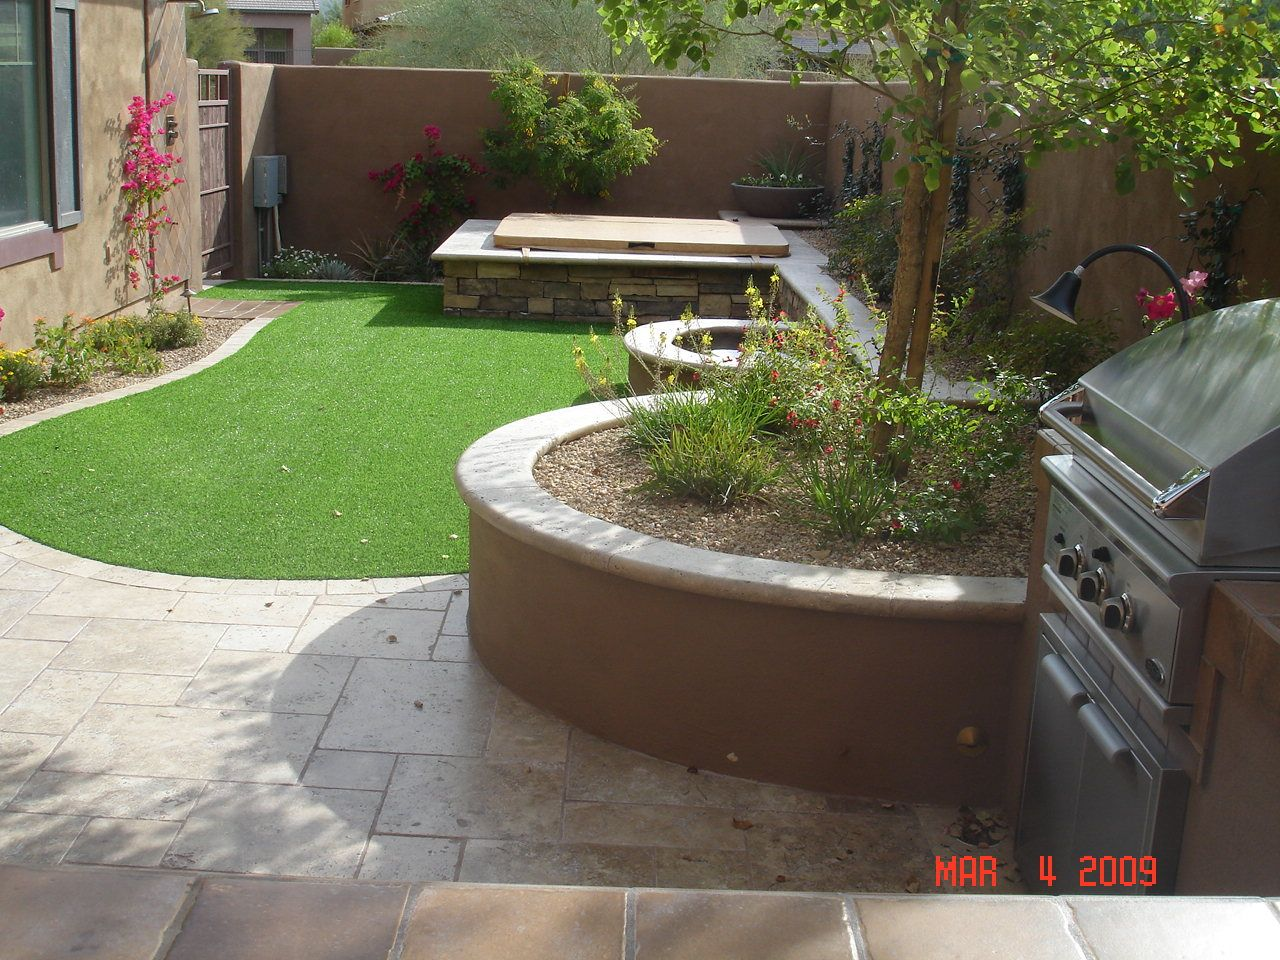 Heres a different style for small back yards | Garden and backyard ...